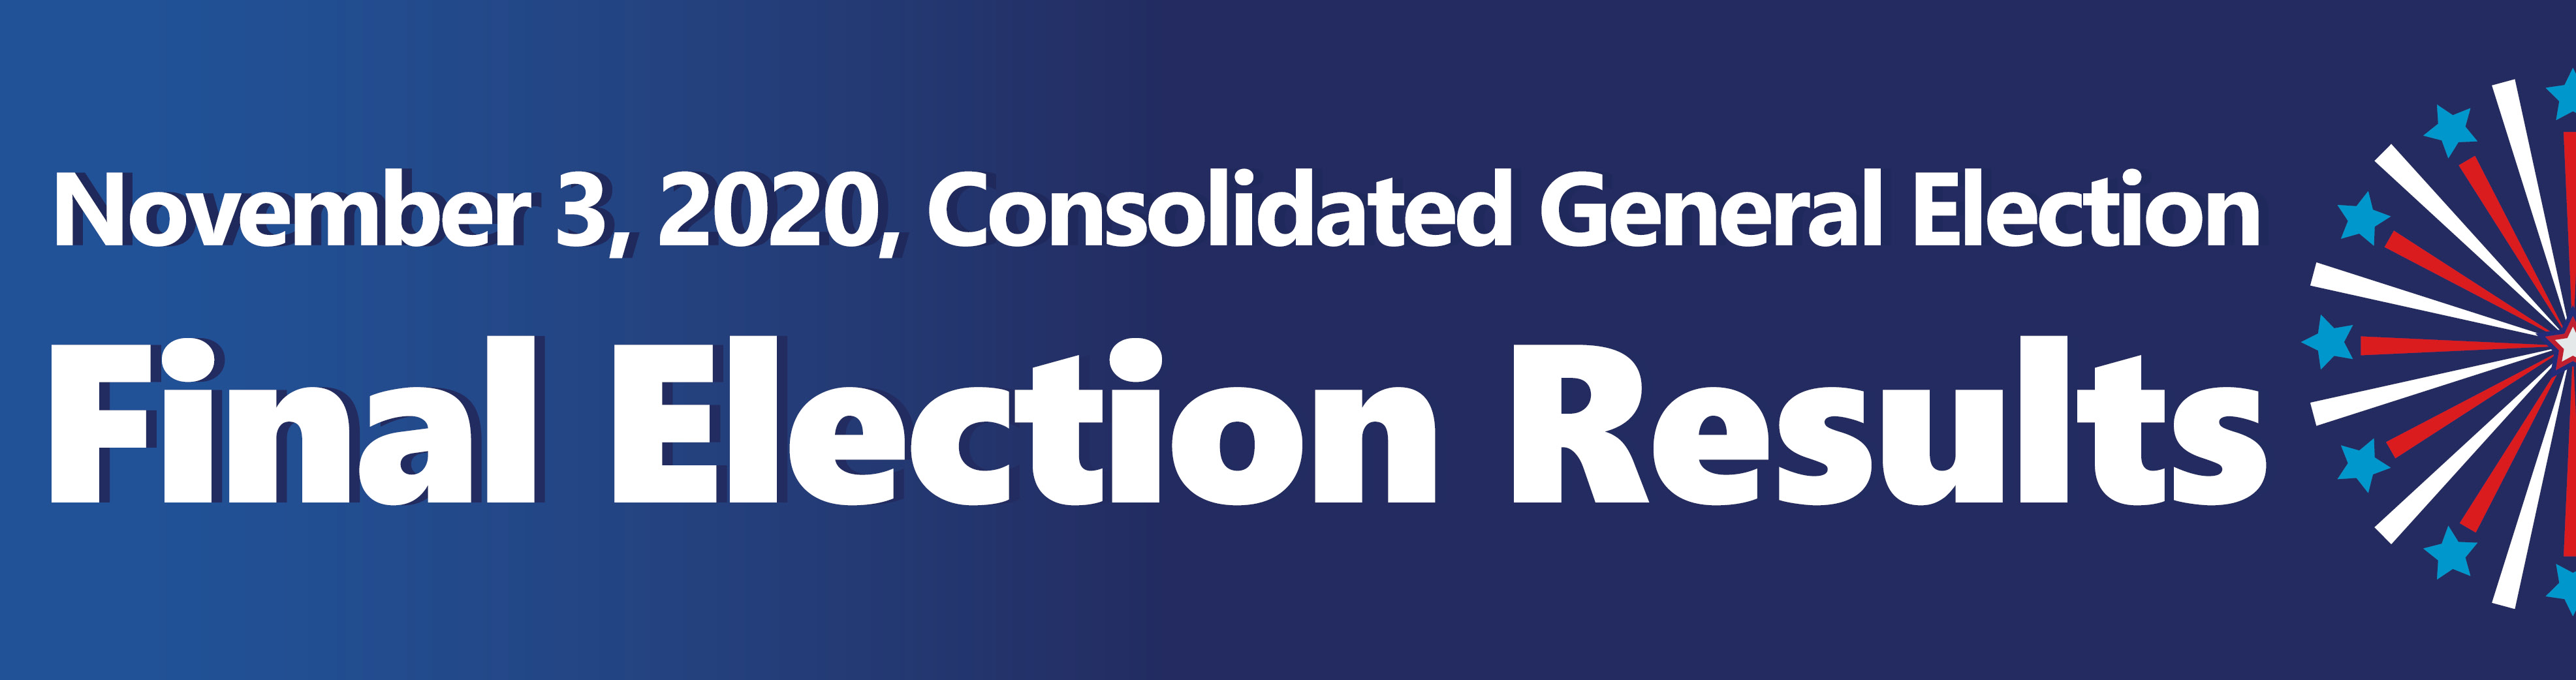 November 3, 2020 Consolidated General Election Preliminary Results